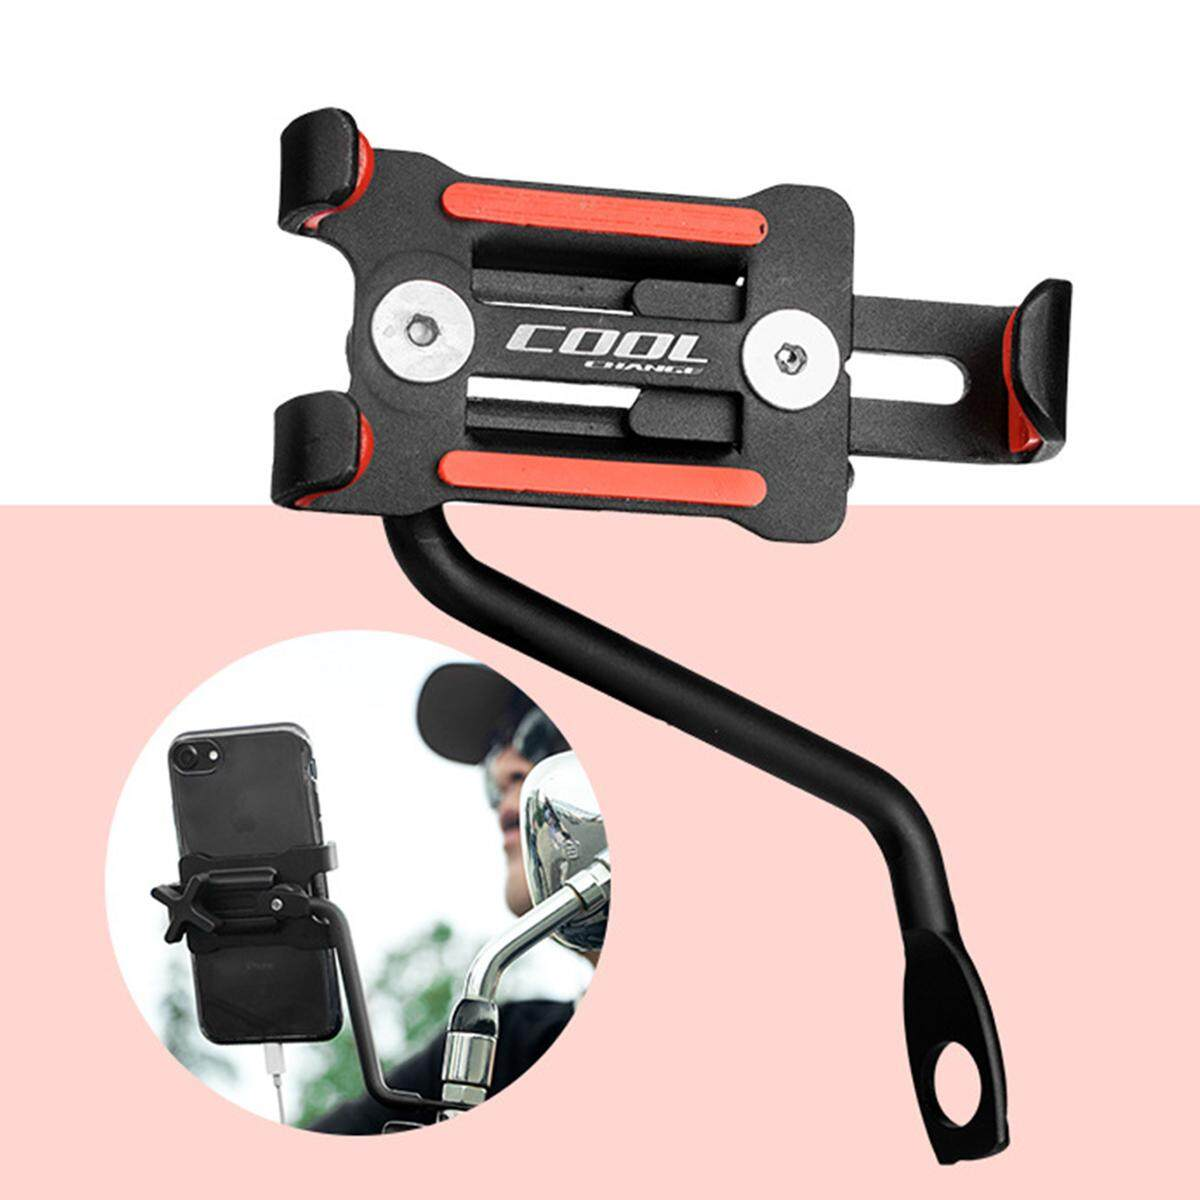 【free Shipping + Flash Deal】universal Full Aluminum Motorcycle Rear View Mirror Phone Holder Mount Stand By Nimbler.